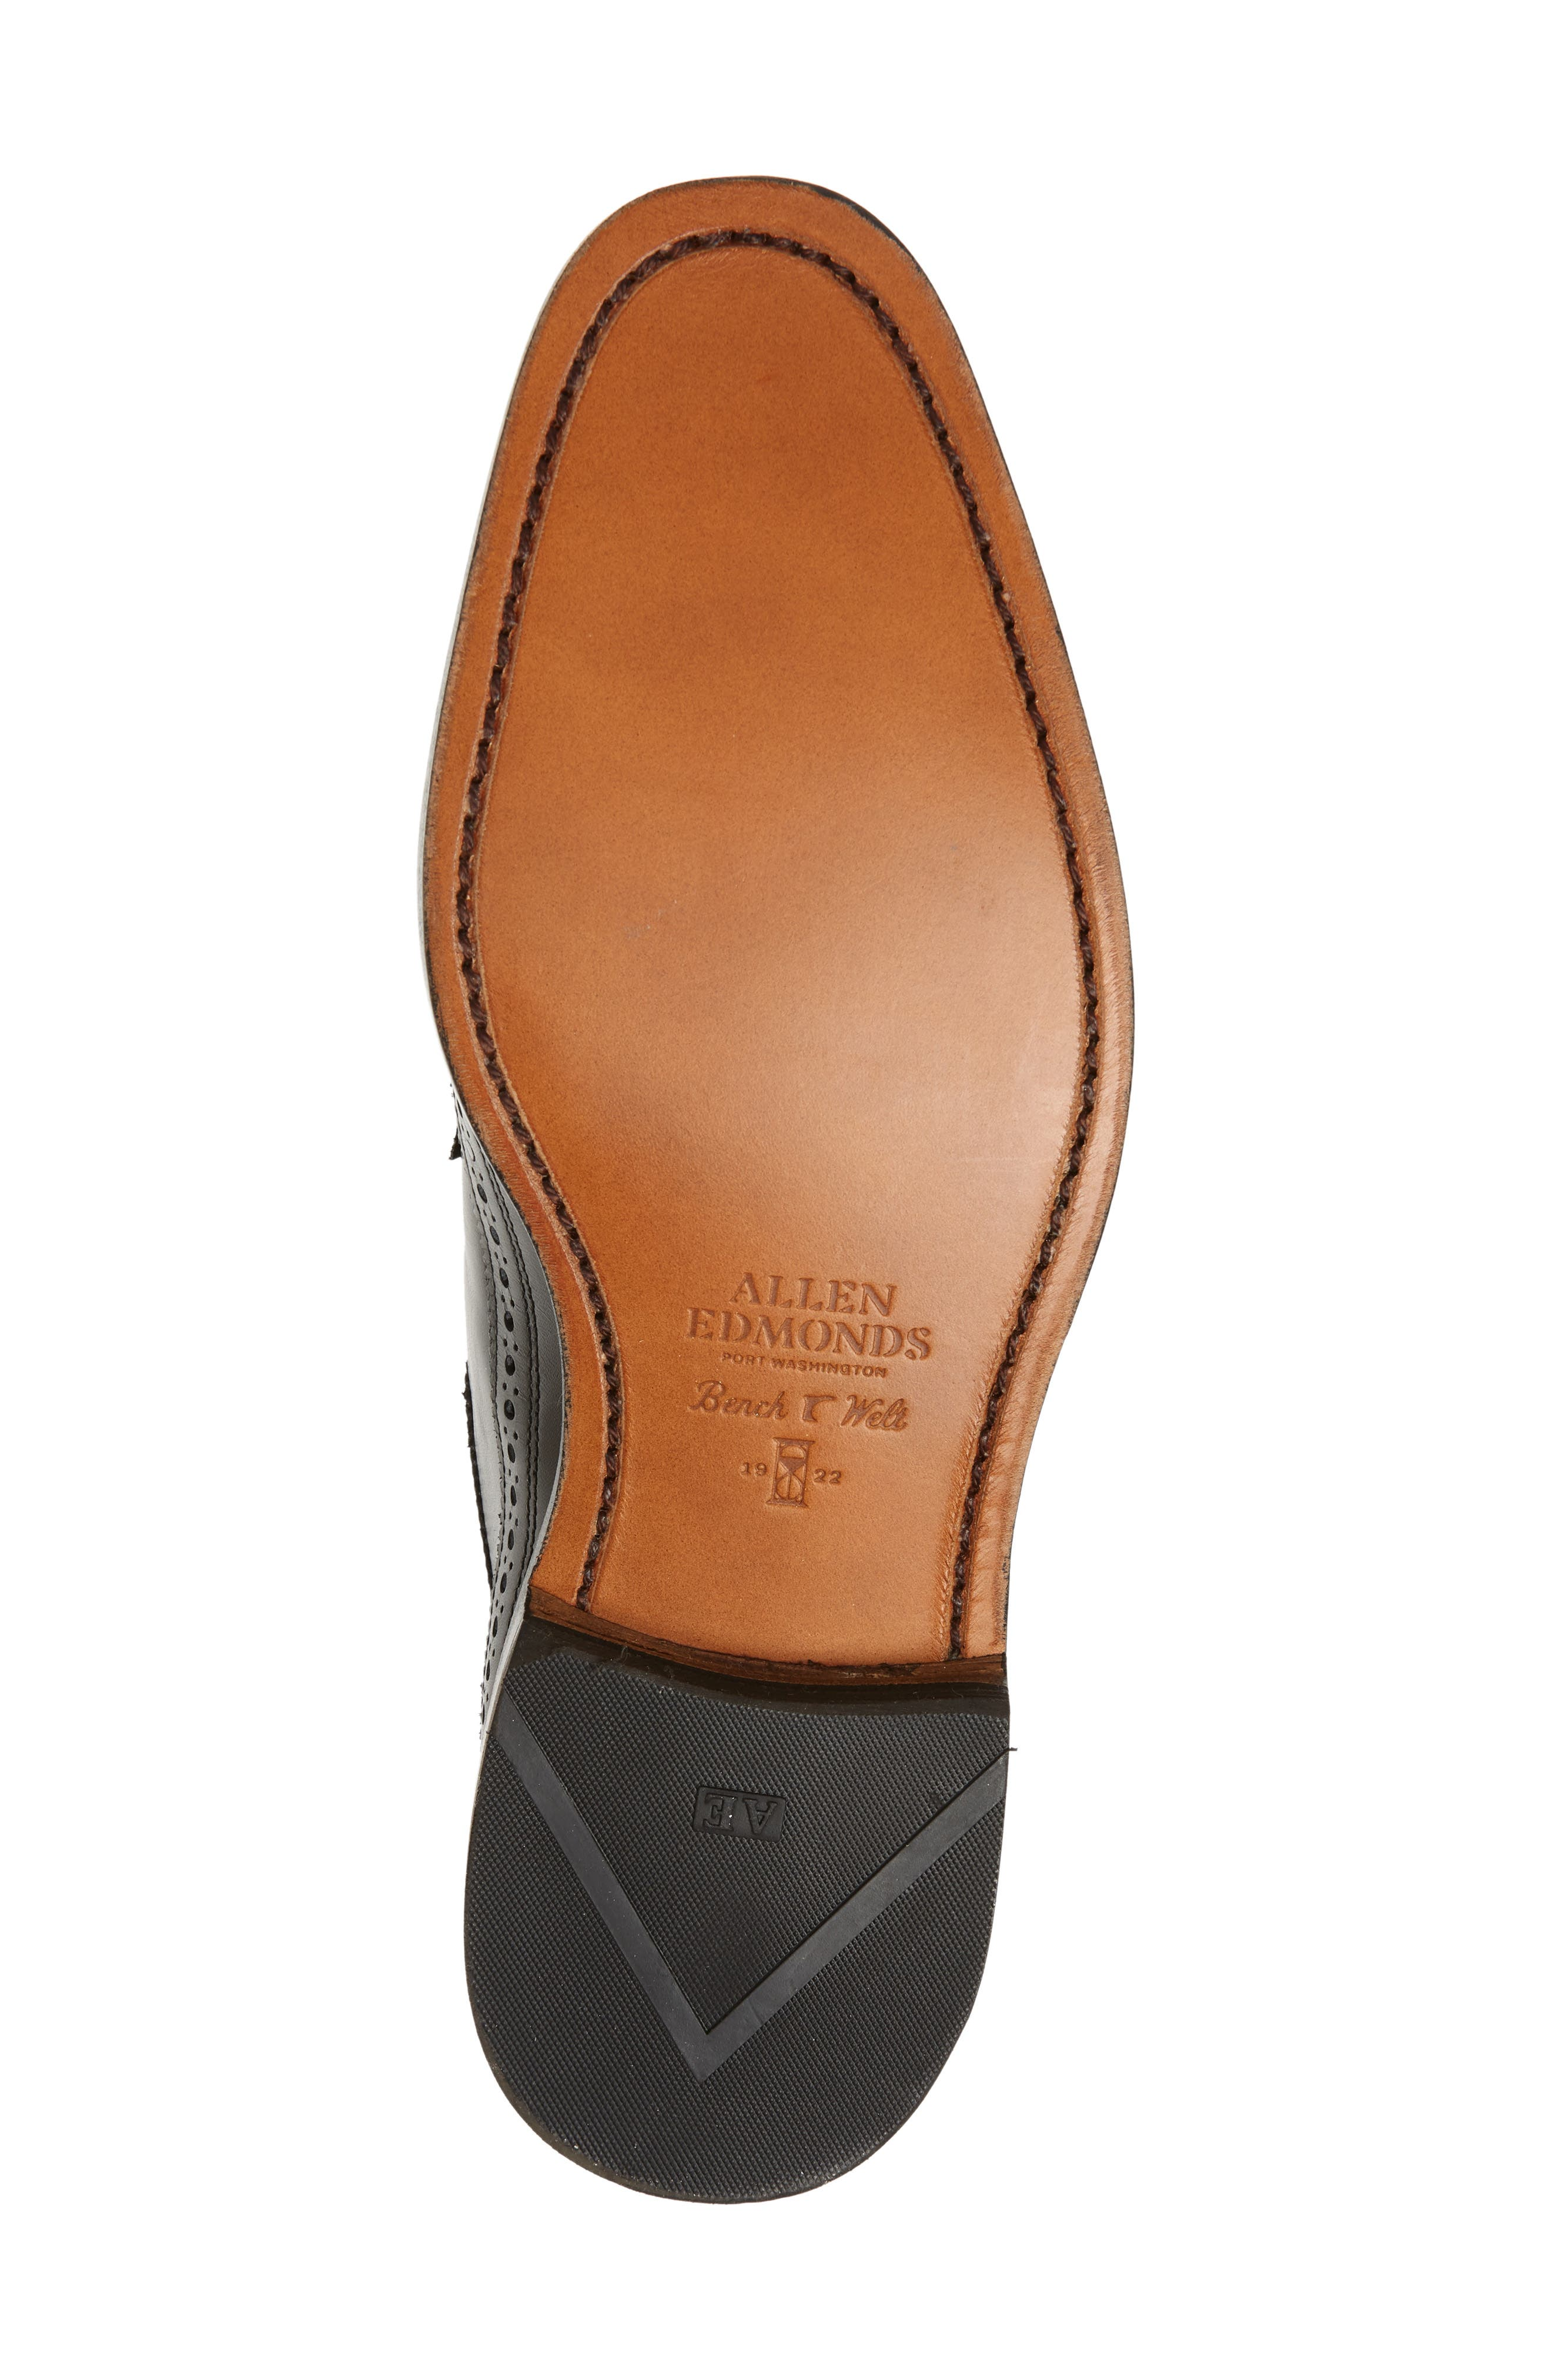 ALLEN EDMONDS,                             Grandview Longwing Derby,                             Alternate thumbnail 6, color,                             001